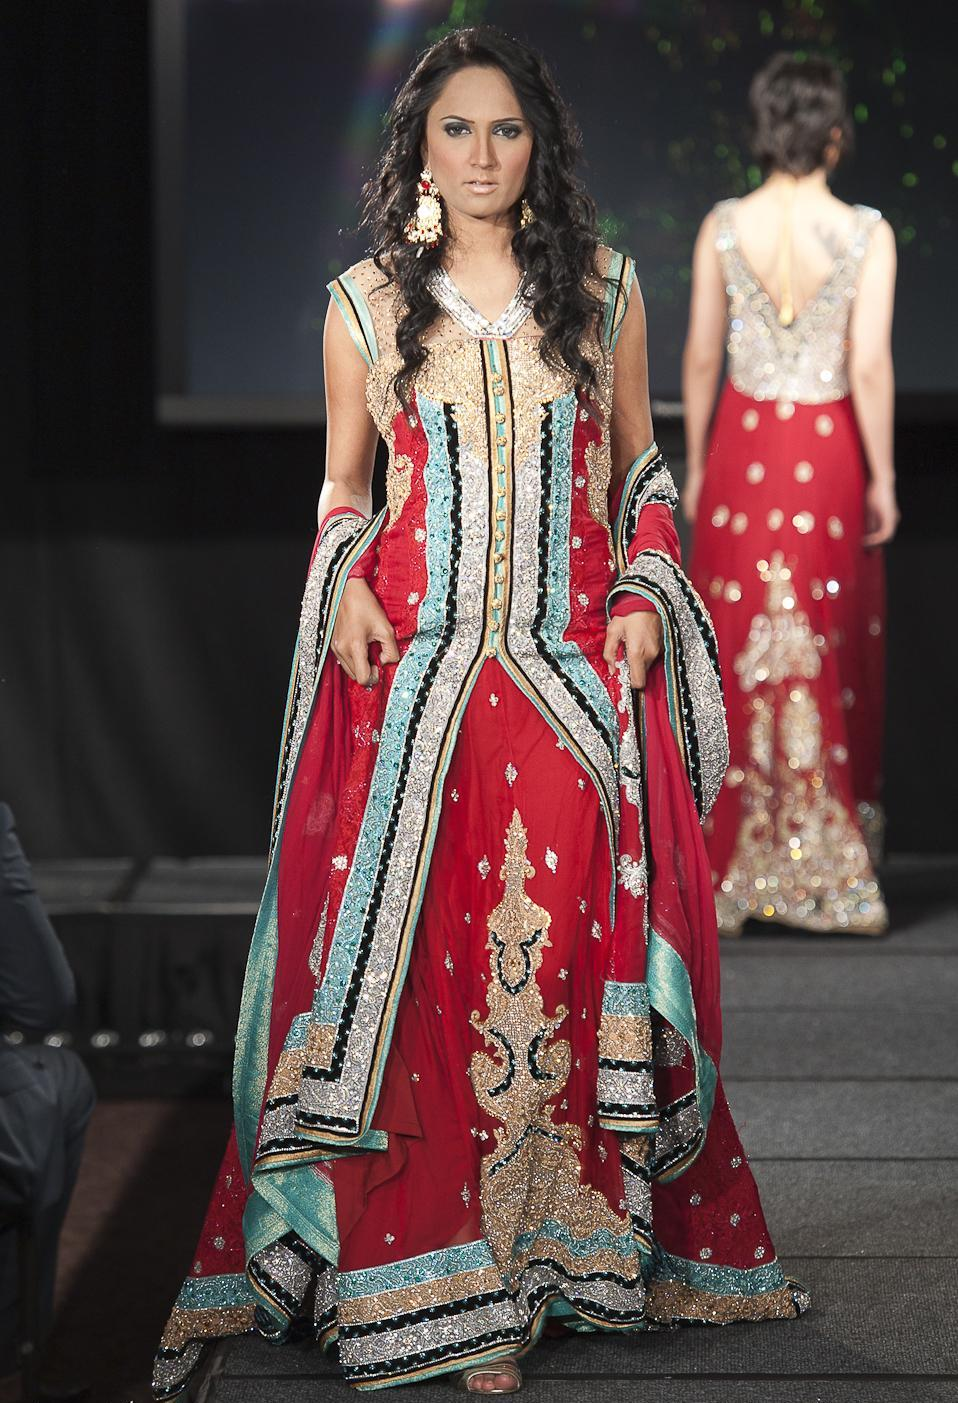 PAKISTANI BRIDAL DRESSES(vol:1) - FASHION n CULTURE